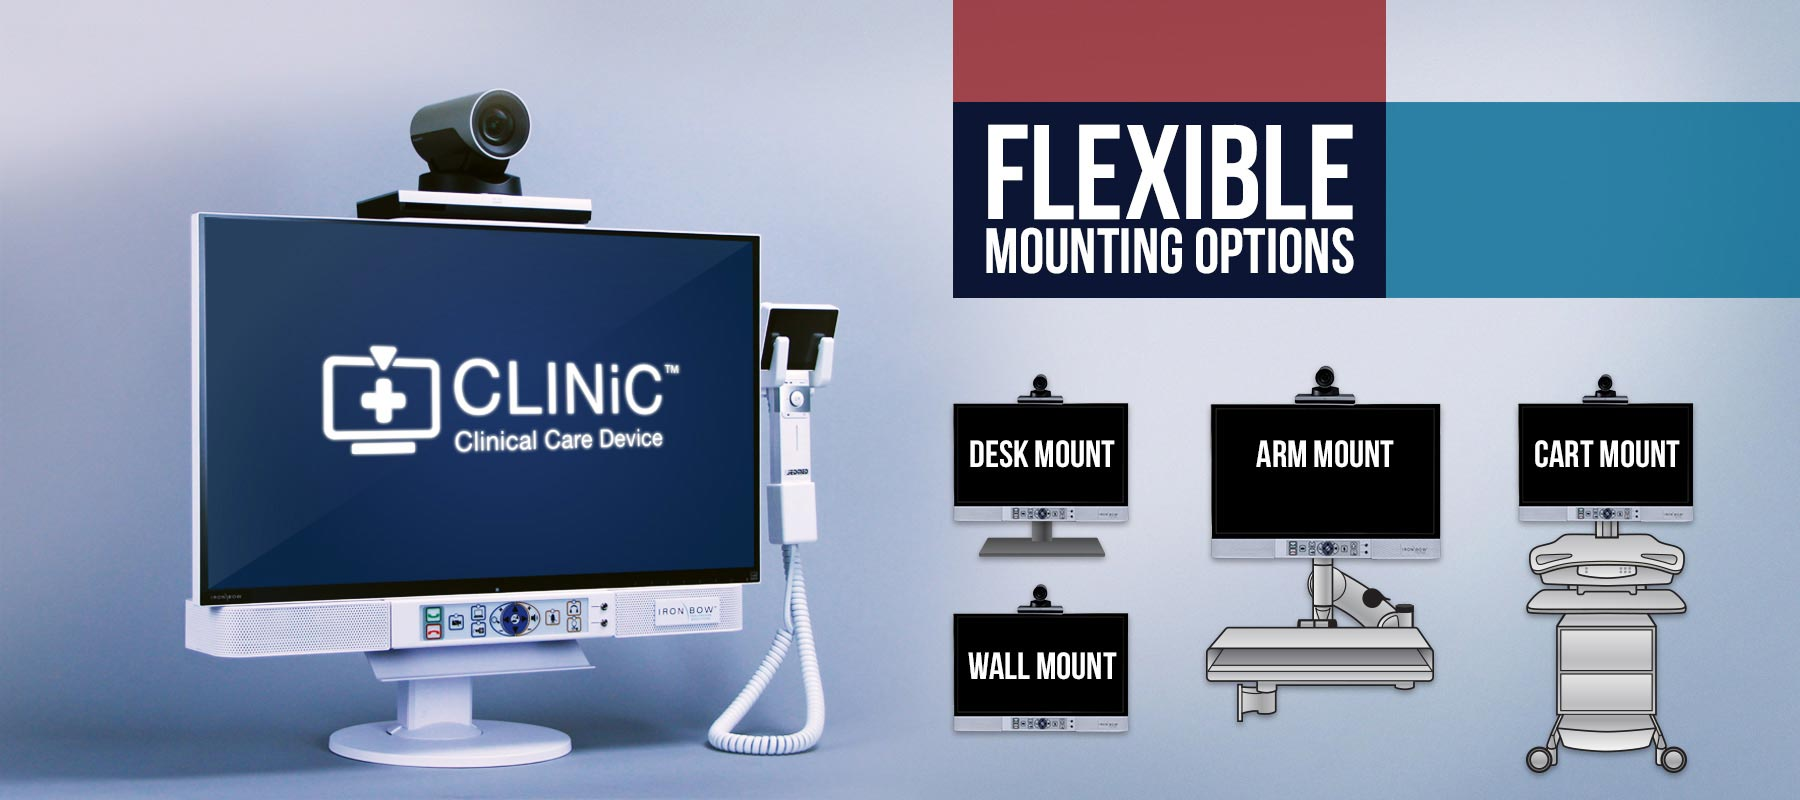 Flexible Mounting Options